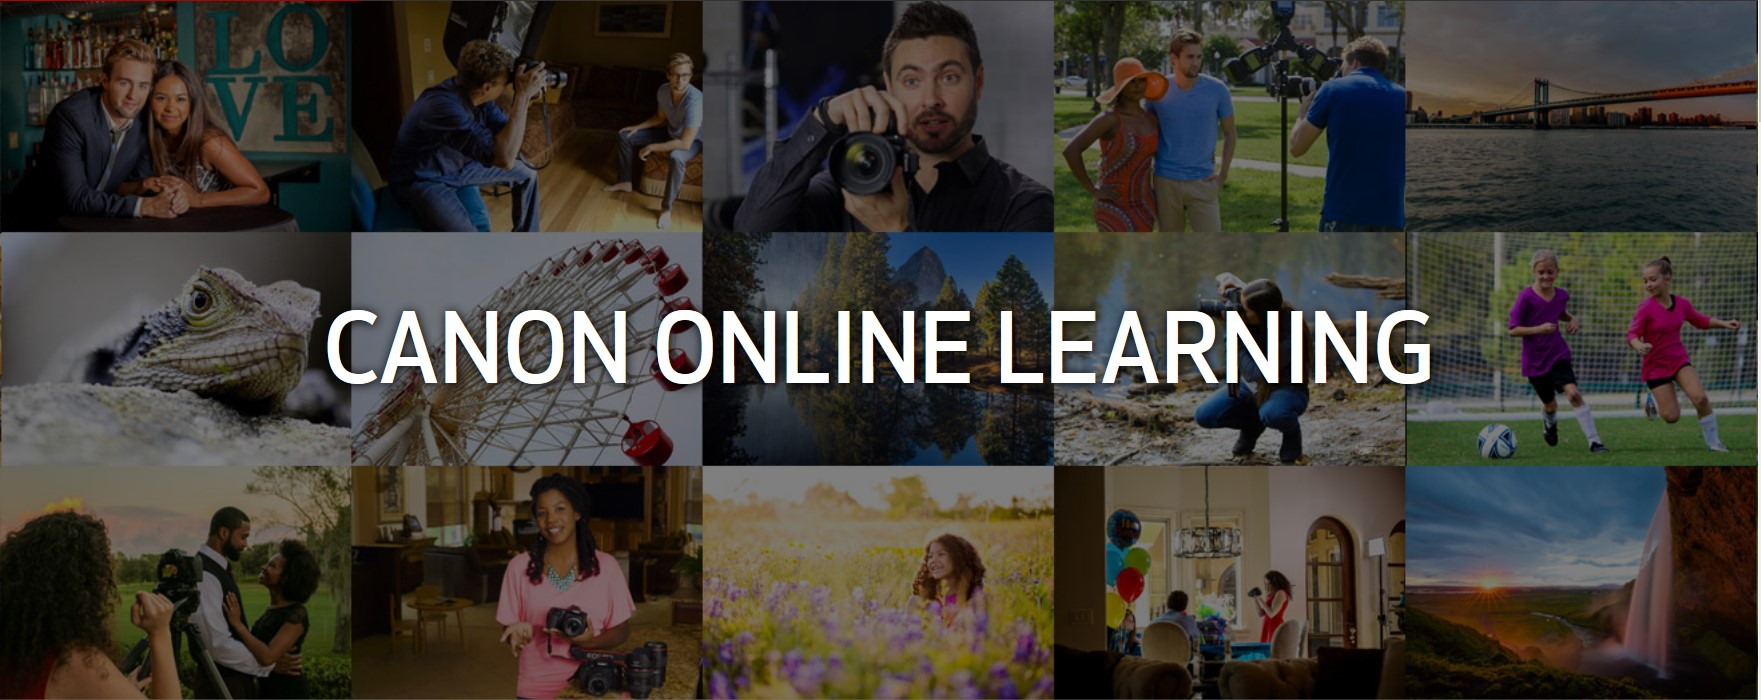 Canon Usa Launches New Online Photography Courses Digital Photography Review